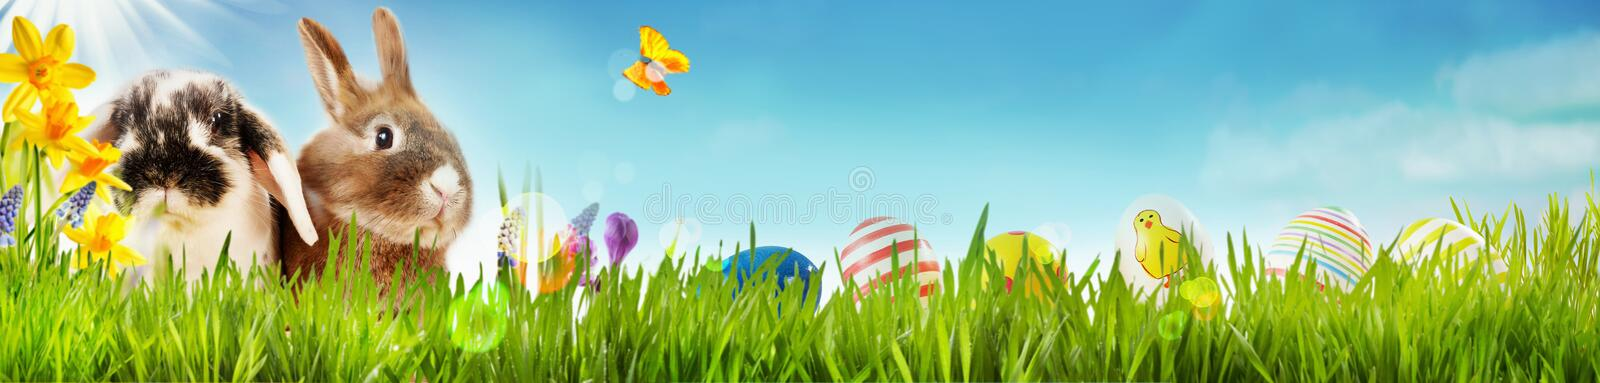 Happy Easter spring banner with little bunnies royalty free stock image